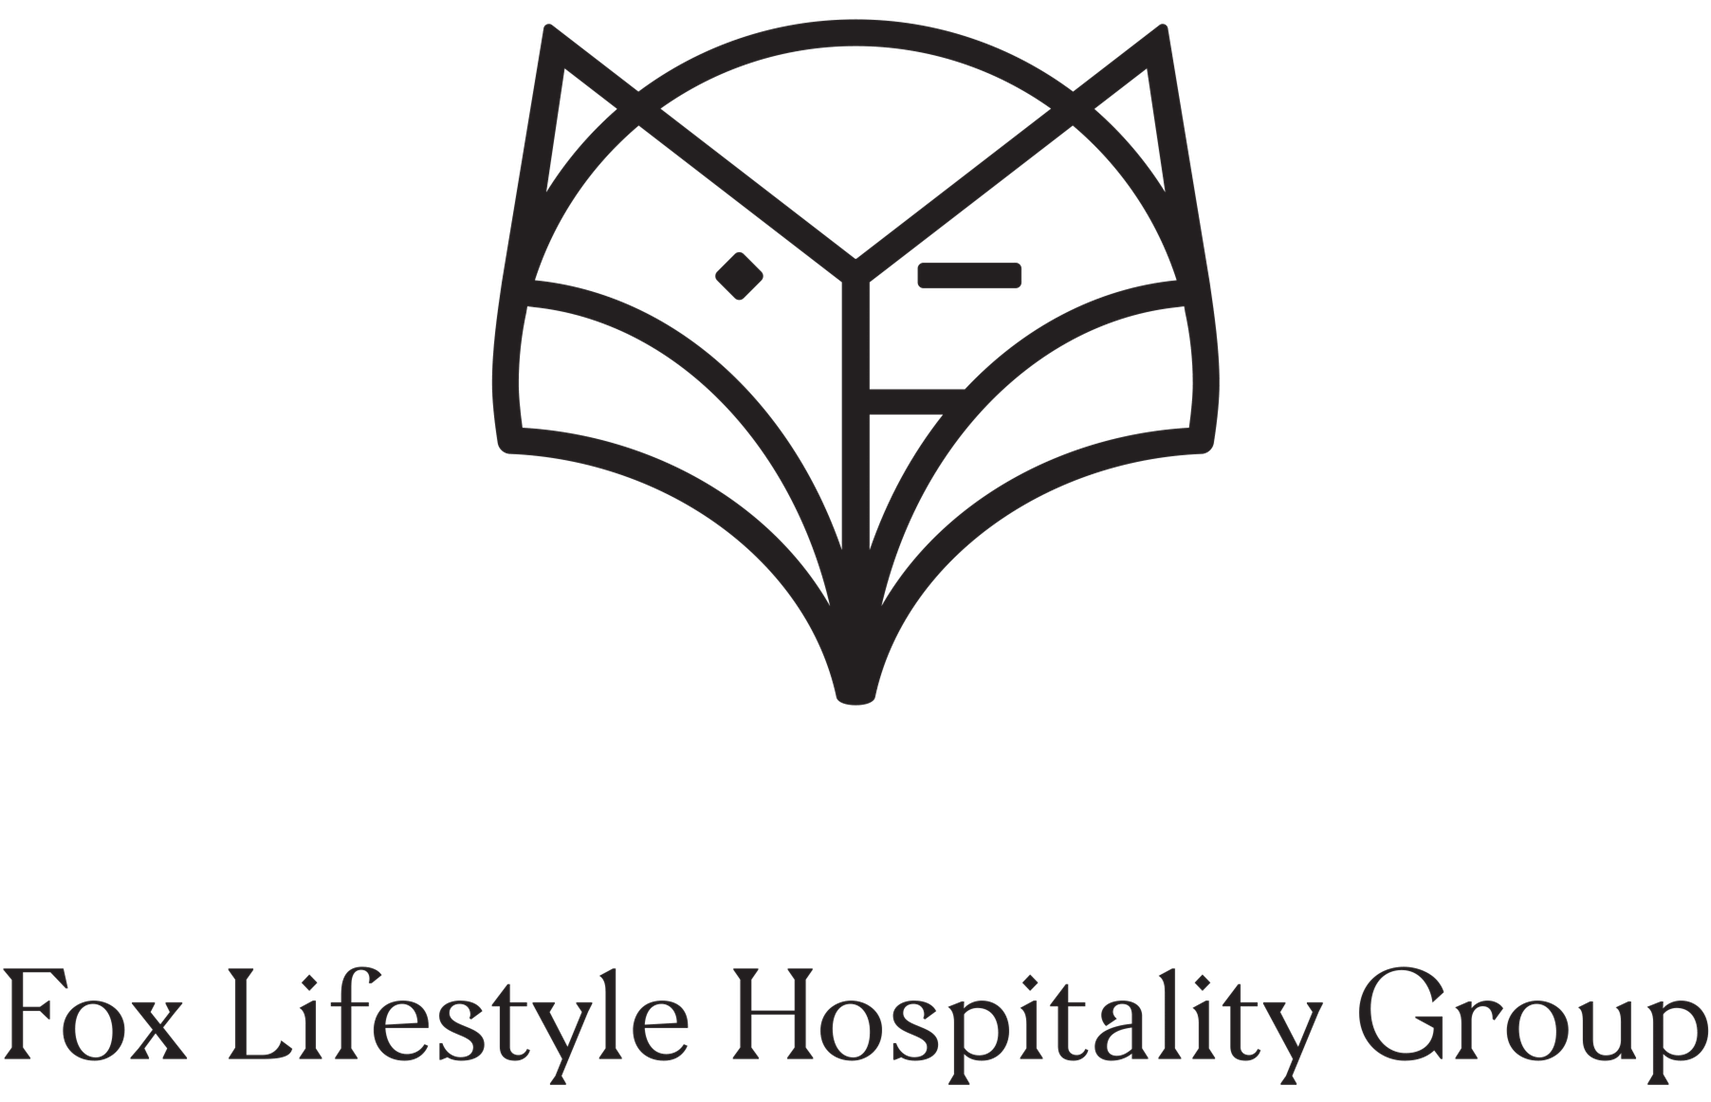 Fox Lifestyle Hospitality Group Home